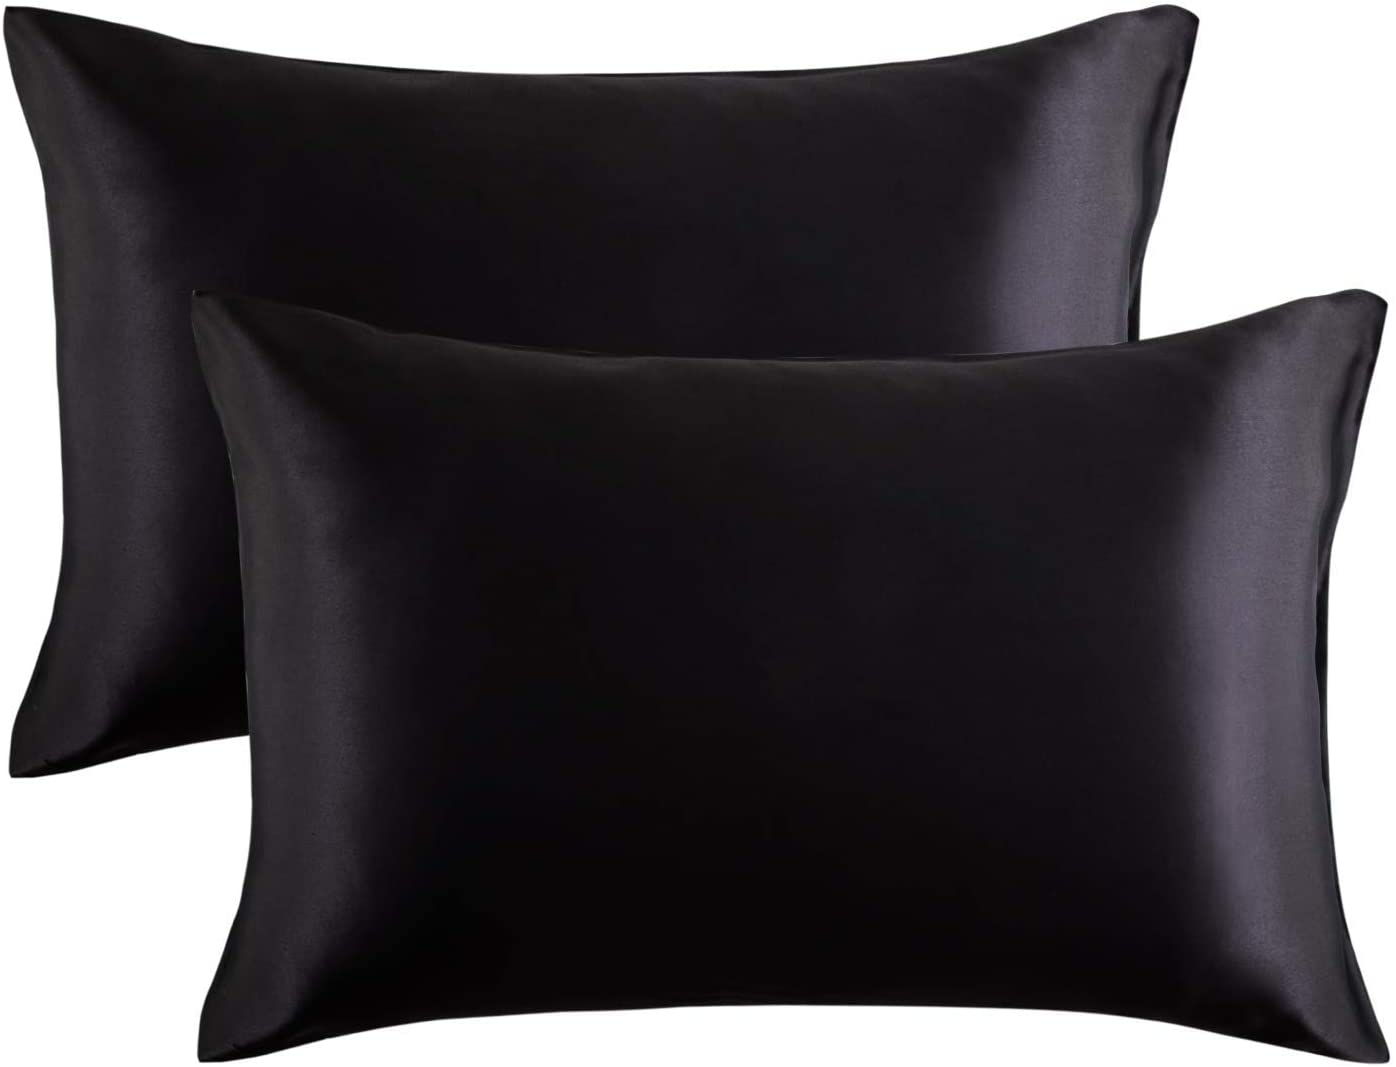 Essencea Satin Throw Pillow Covers Set of 2 Solid Color Decorative European Shams Soft Square Pillowcases for Sofa | Bedroom | Living Room | Car (20 x 30 Inch, Black)